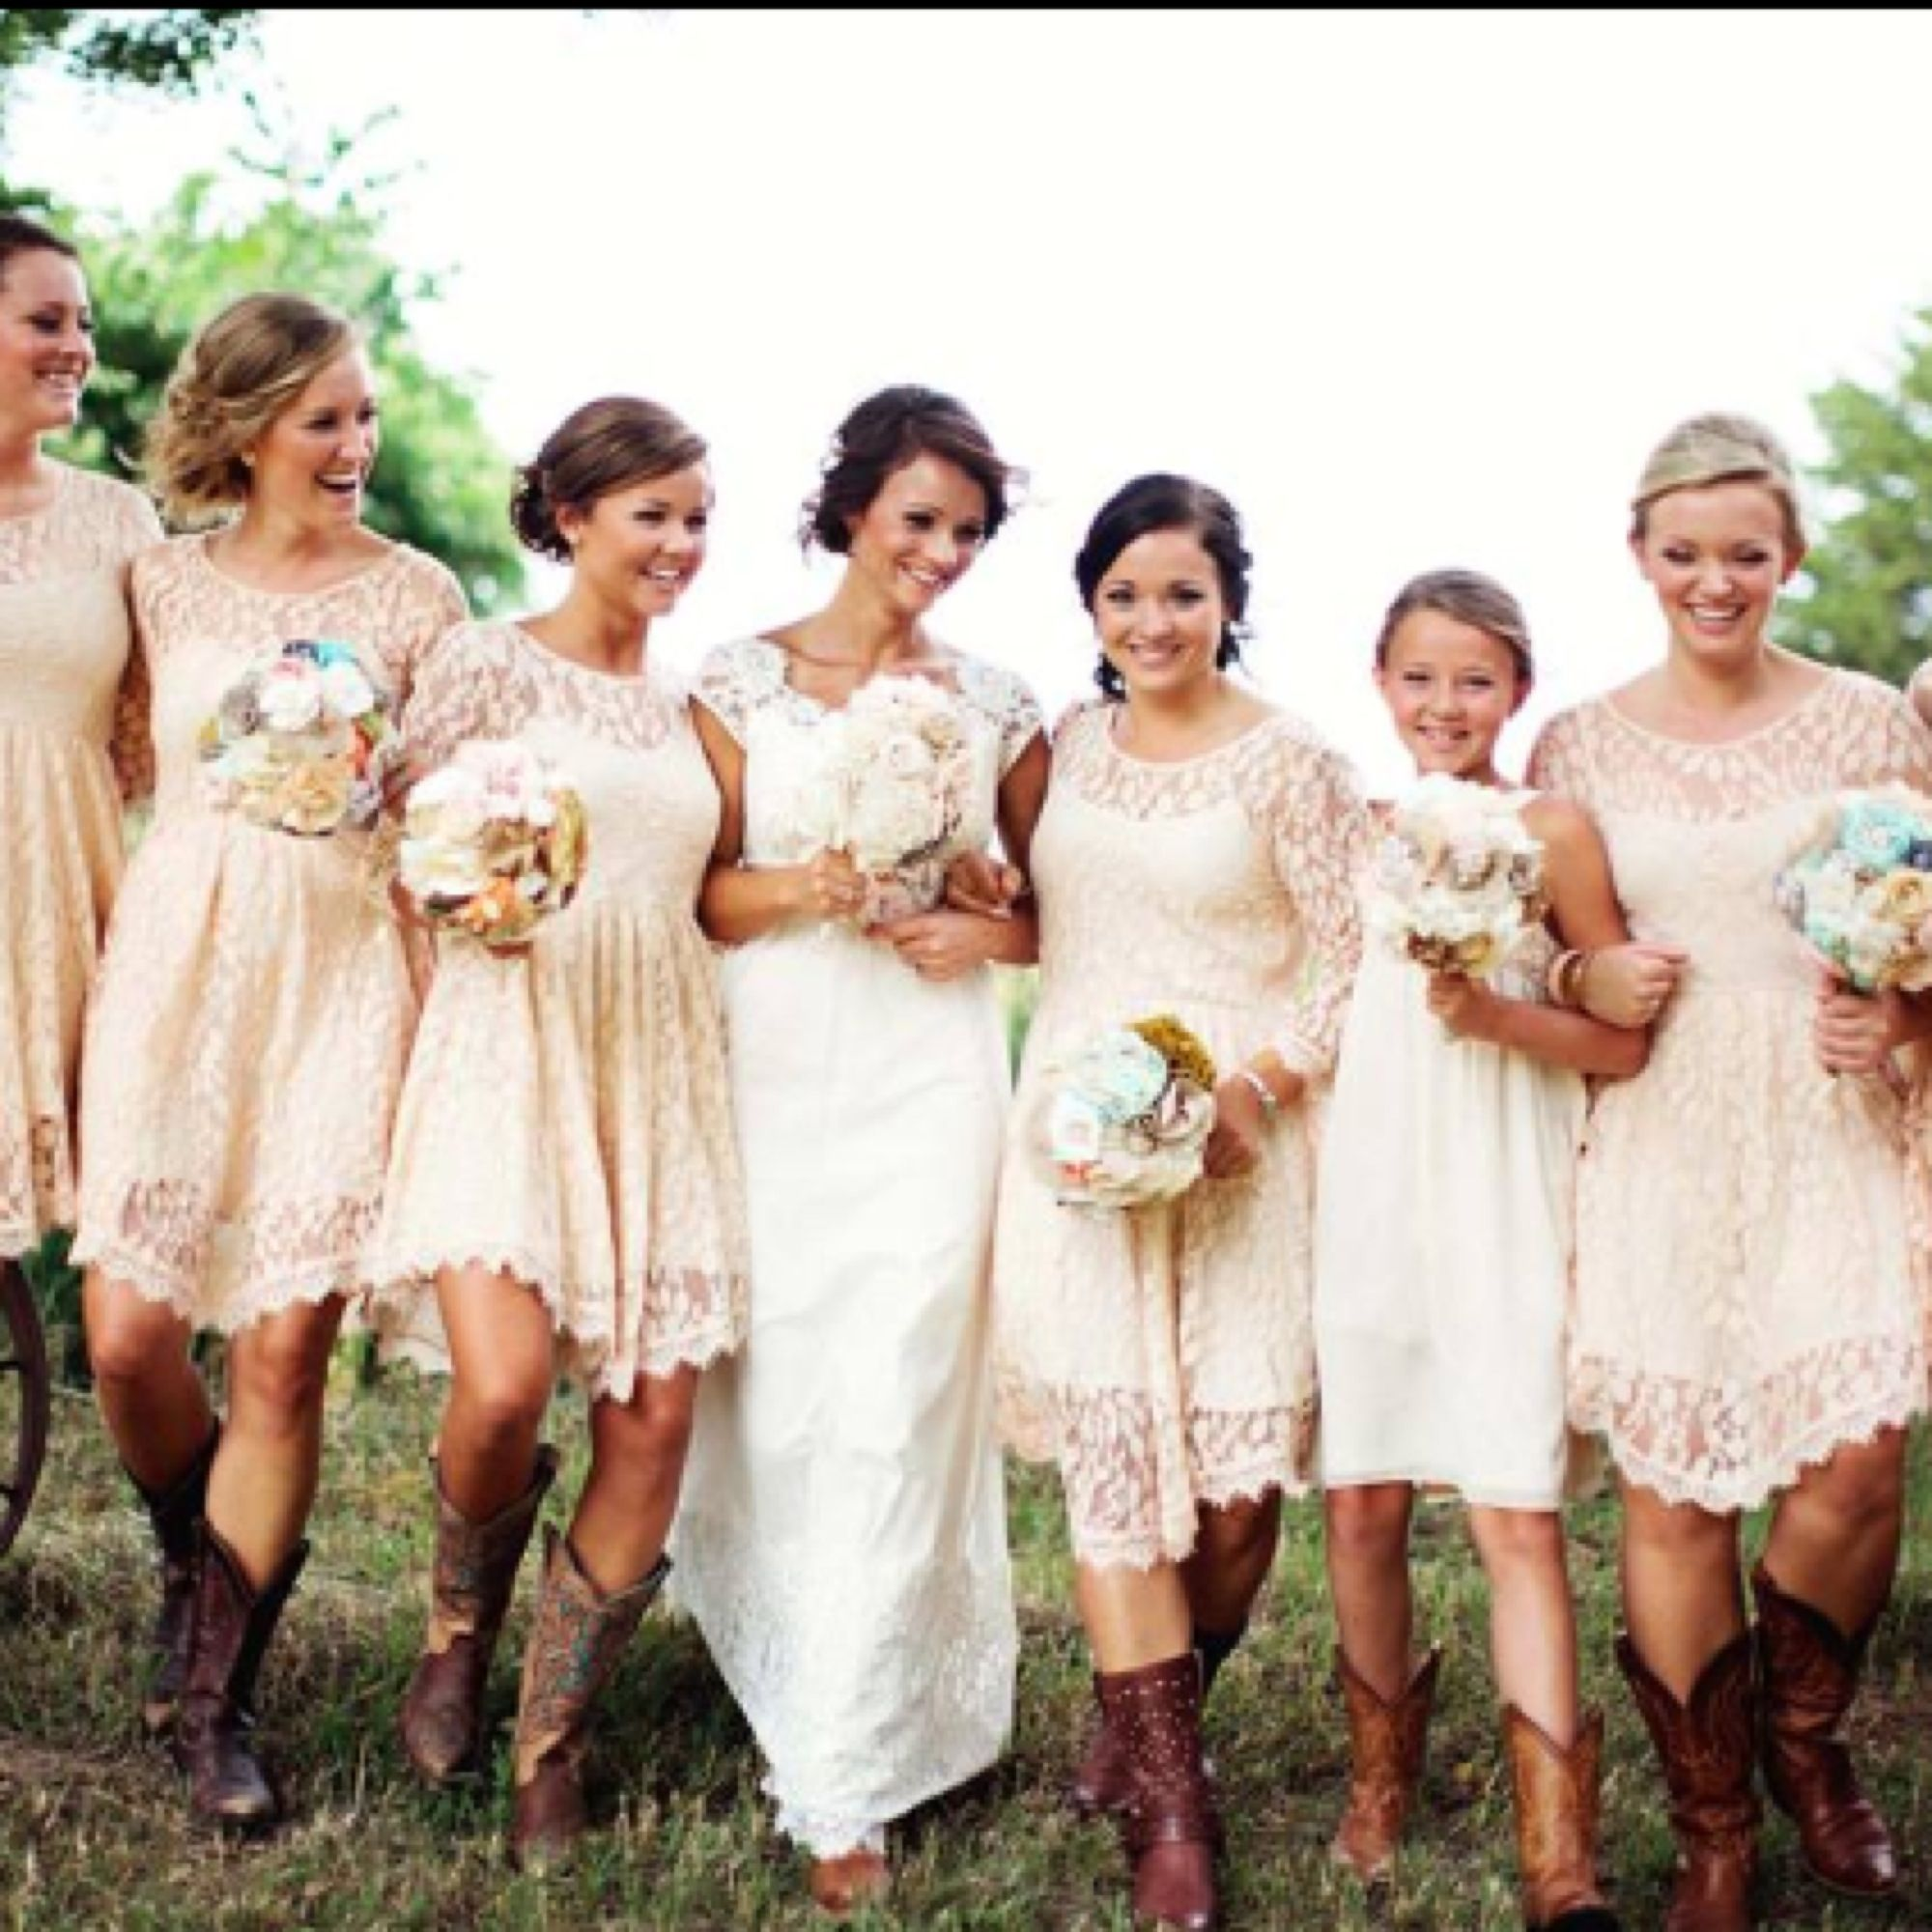 Pin By Lora Nonarath Boncher On One Day Country Bridesmaid Dresses Fall Bridesmaid Dresses Country Wedding Bridesmaids